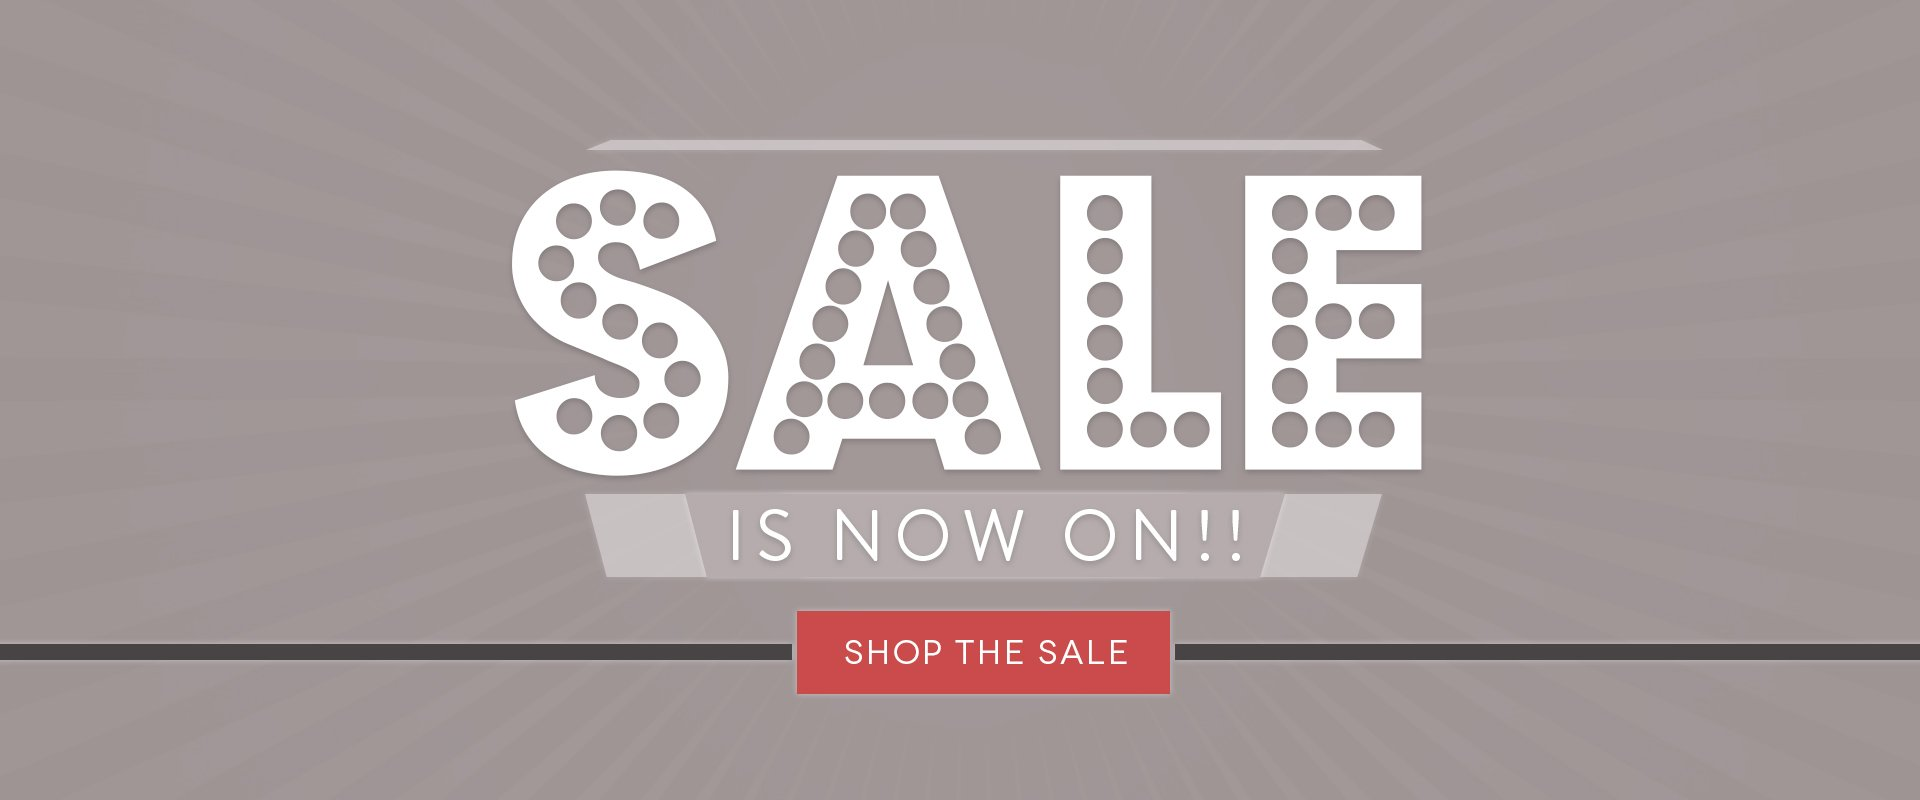 SALE IS NOW ON!!